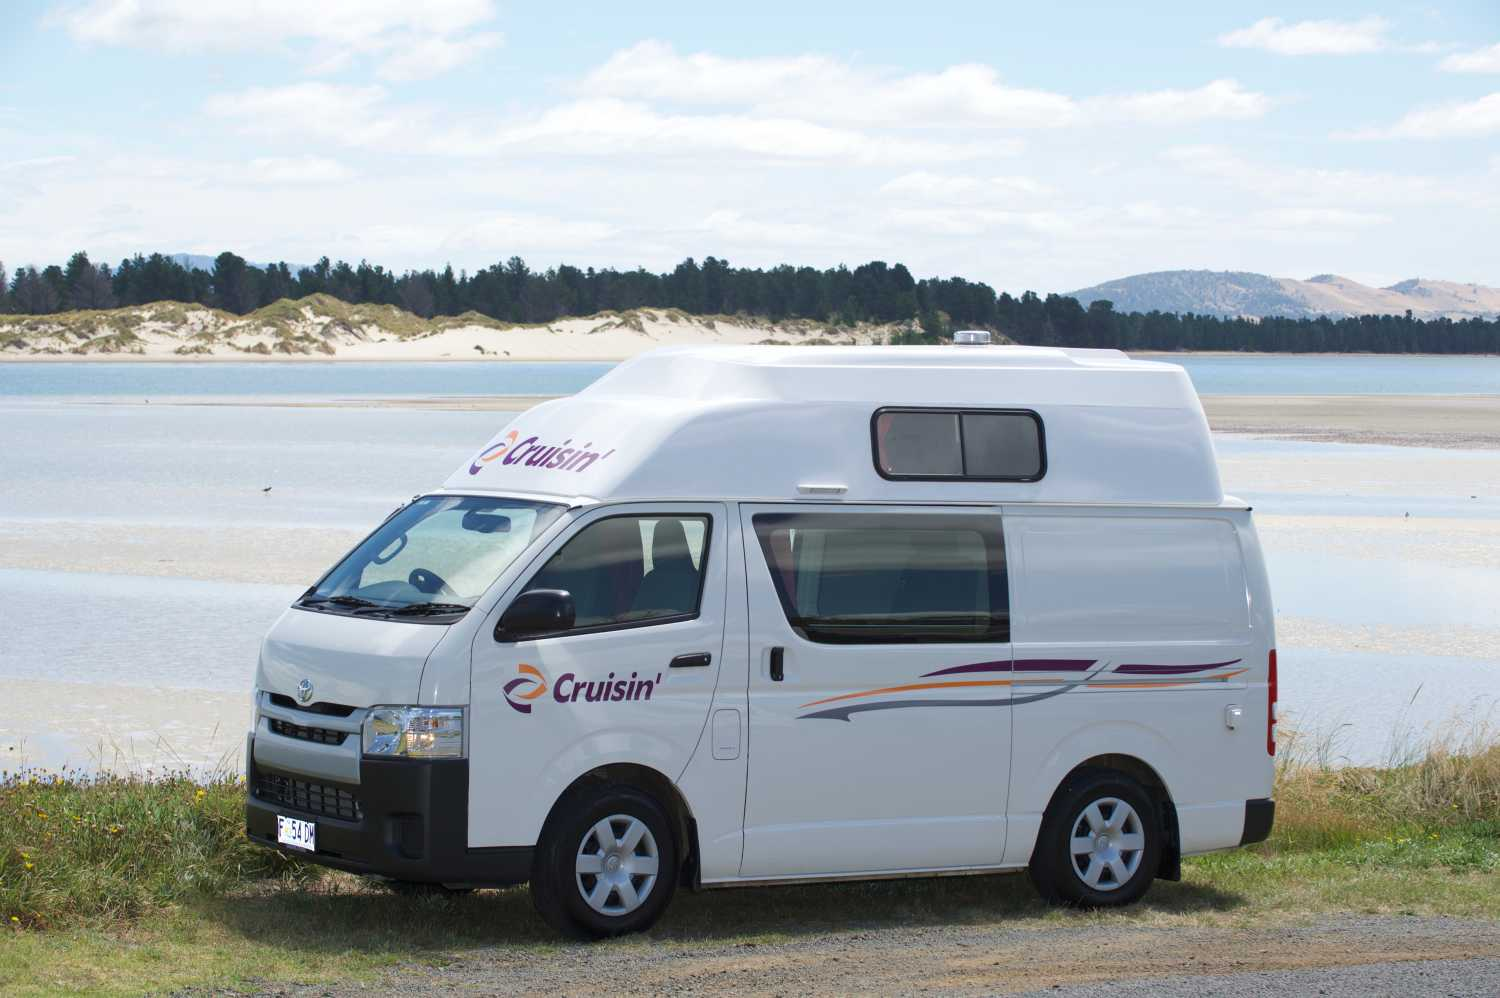 Miraculous Cruisin Motorhomes Review Compare Prices And Book Download Free Architecture Designs Scobabritishbridgeorg